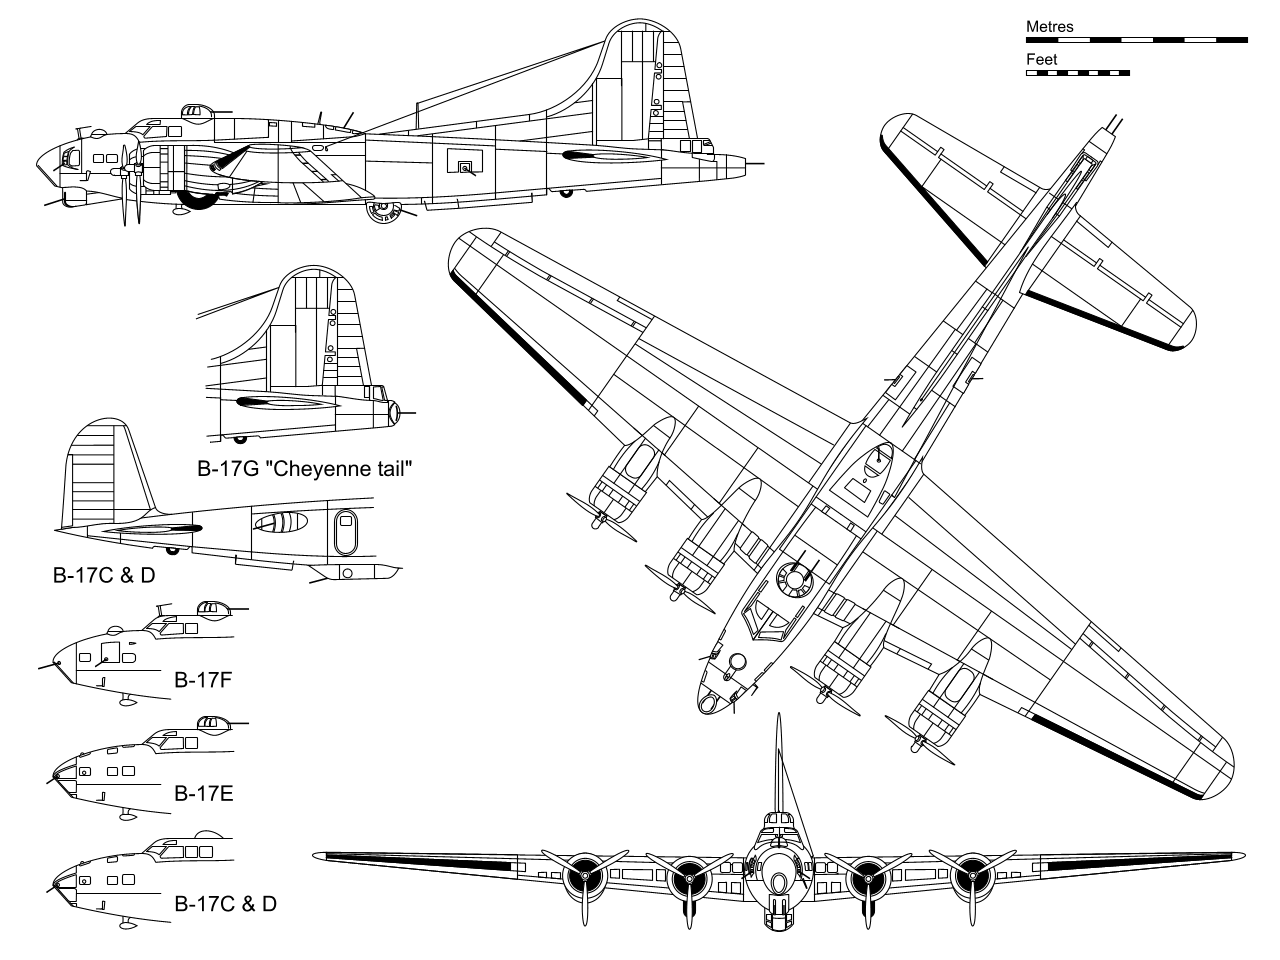 Miraculous Boeing B 17 Flying Fortress Wikipedia Wiring Digital Resources Sapebecompassionincorg